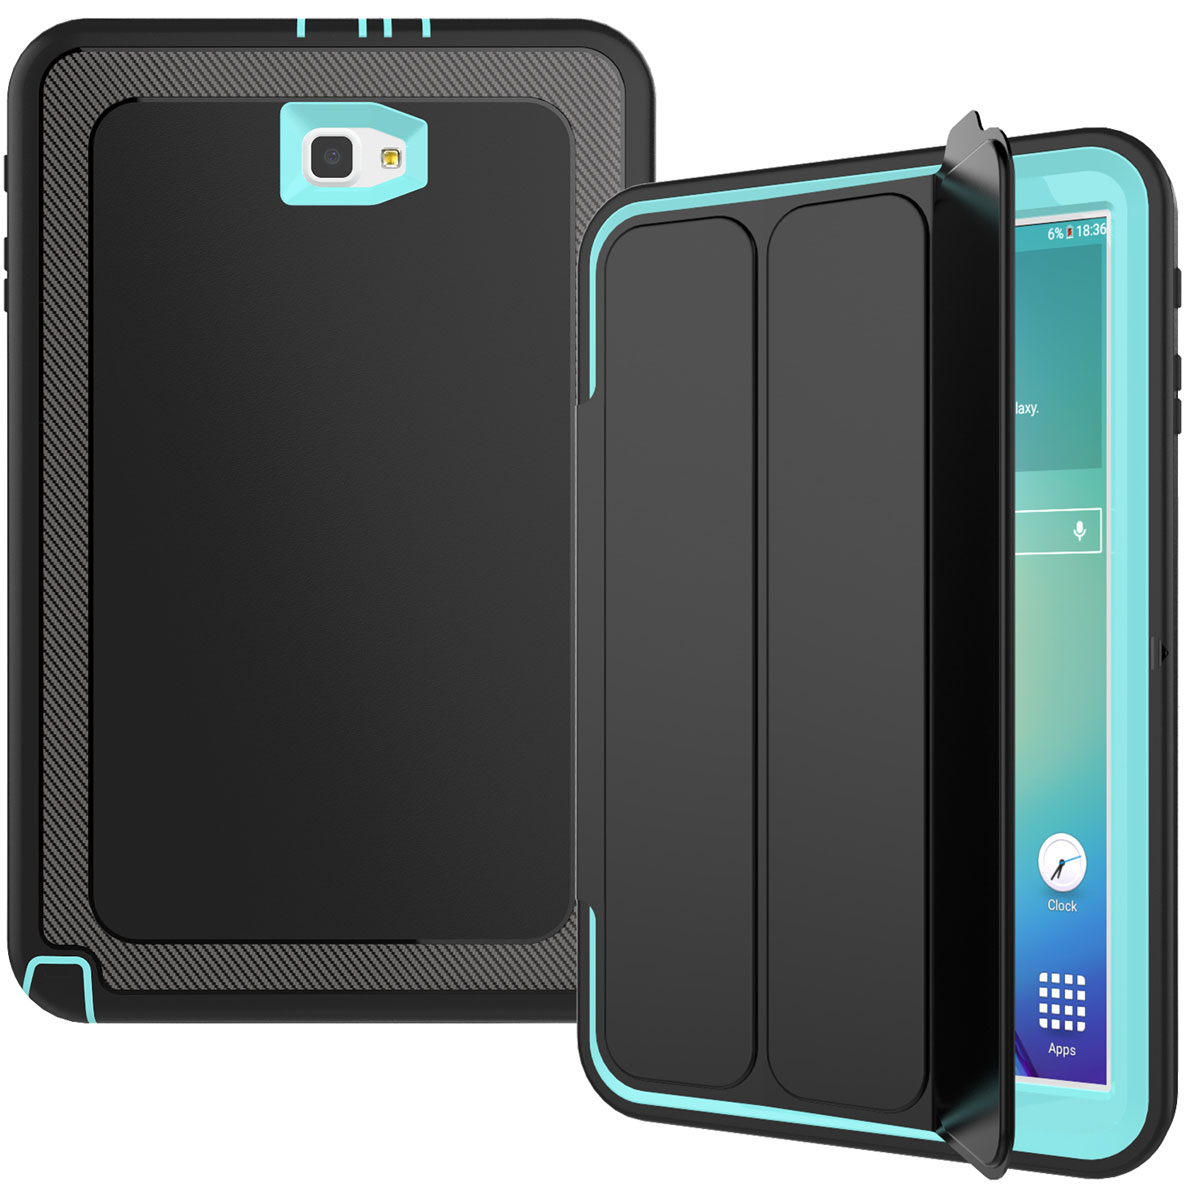 heavy duty shockproof smart cover case for samsung galaxy. Black Bedroom Furniture Sets. Home Design Ideas